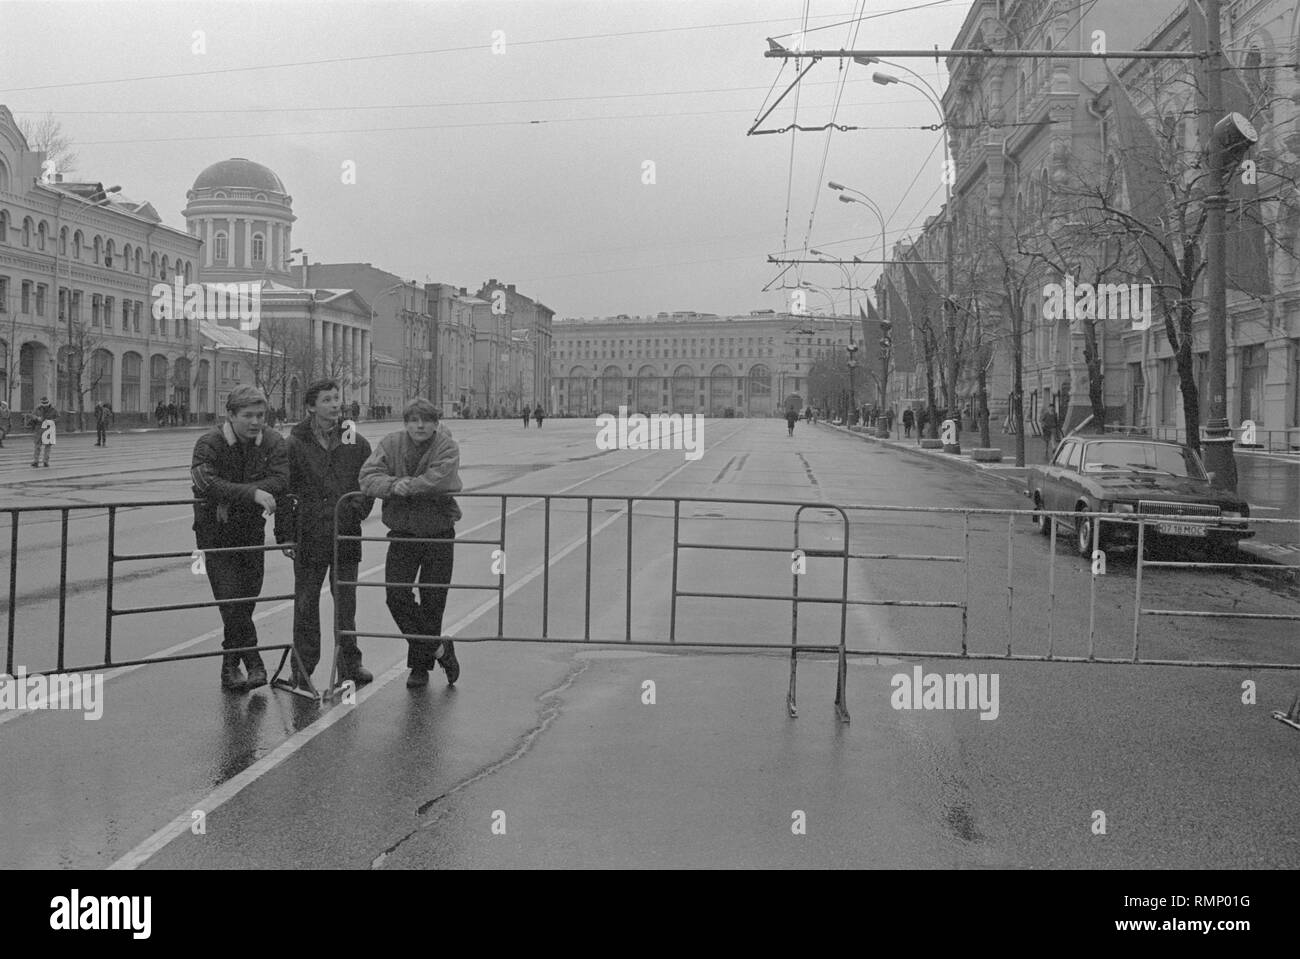 Moscow, USSR - November 7, 1990: Three young men stand by the fence at rally set by Moscow Association of voters, Democratic Russia movement and Democratic Platform without CPSU. - Stock Image